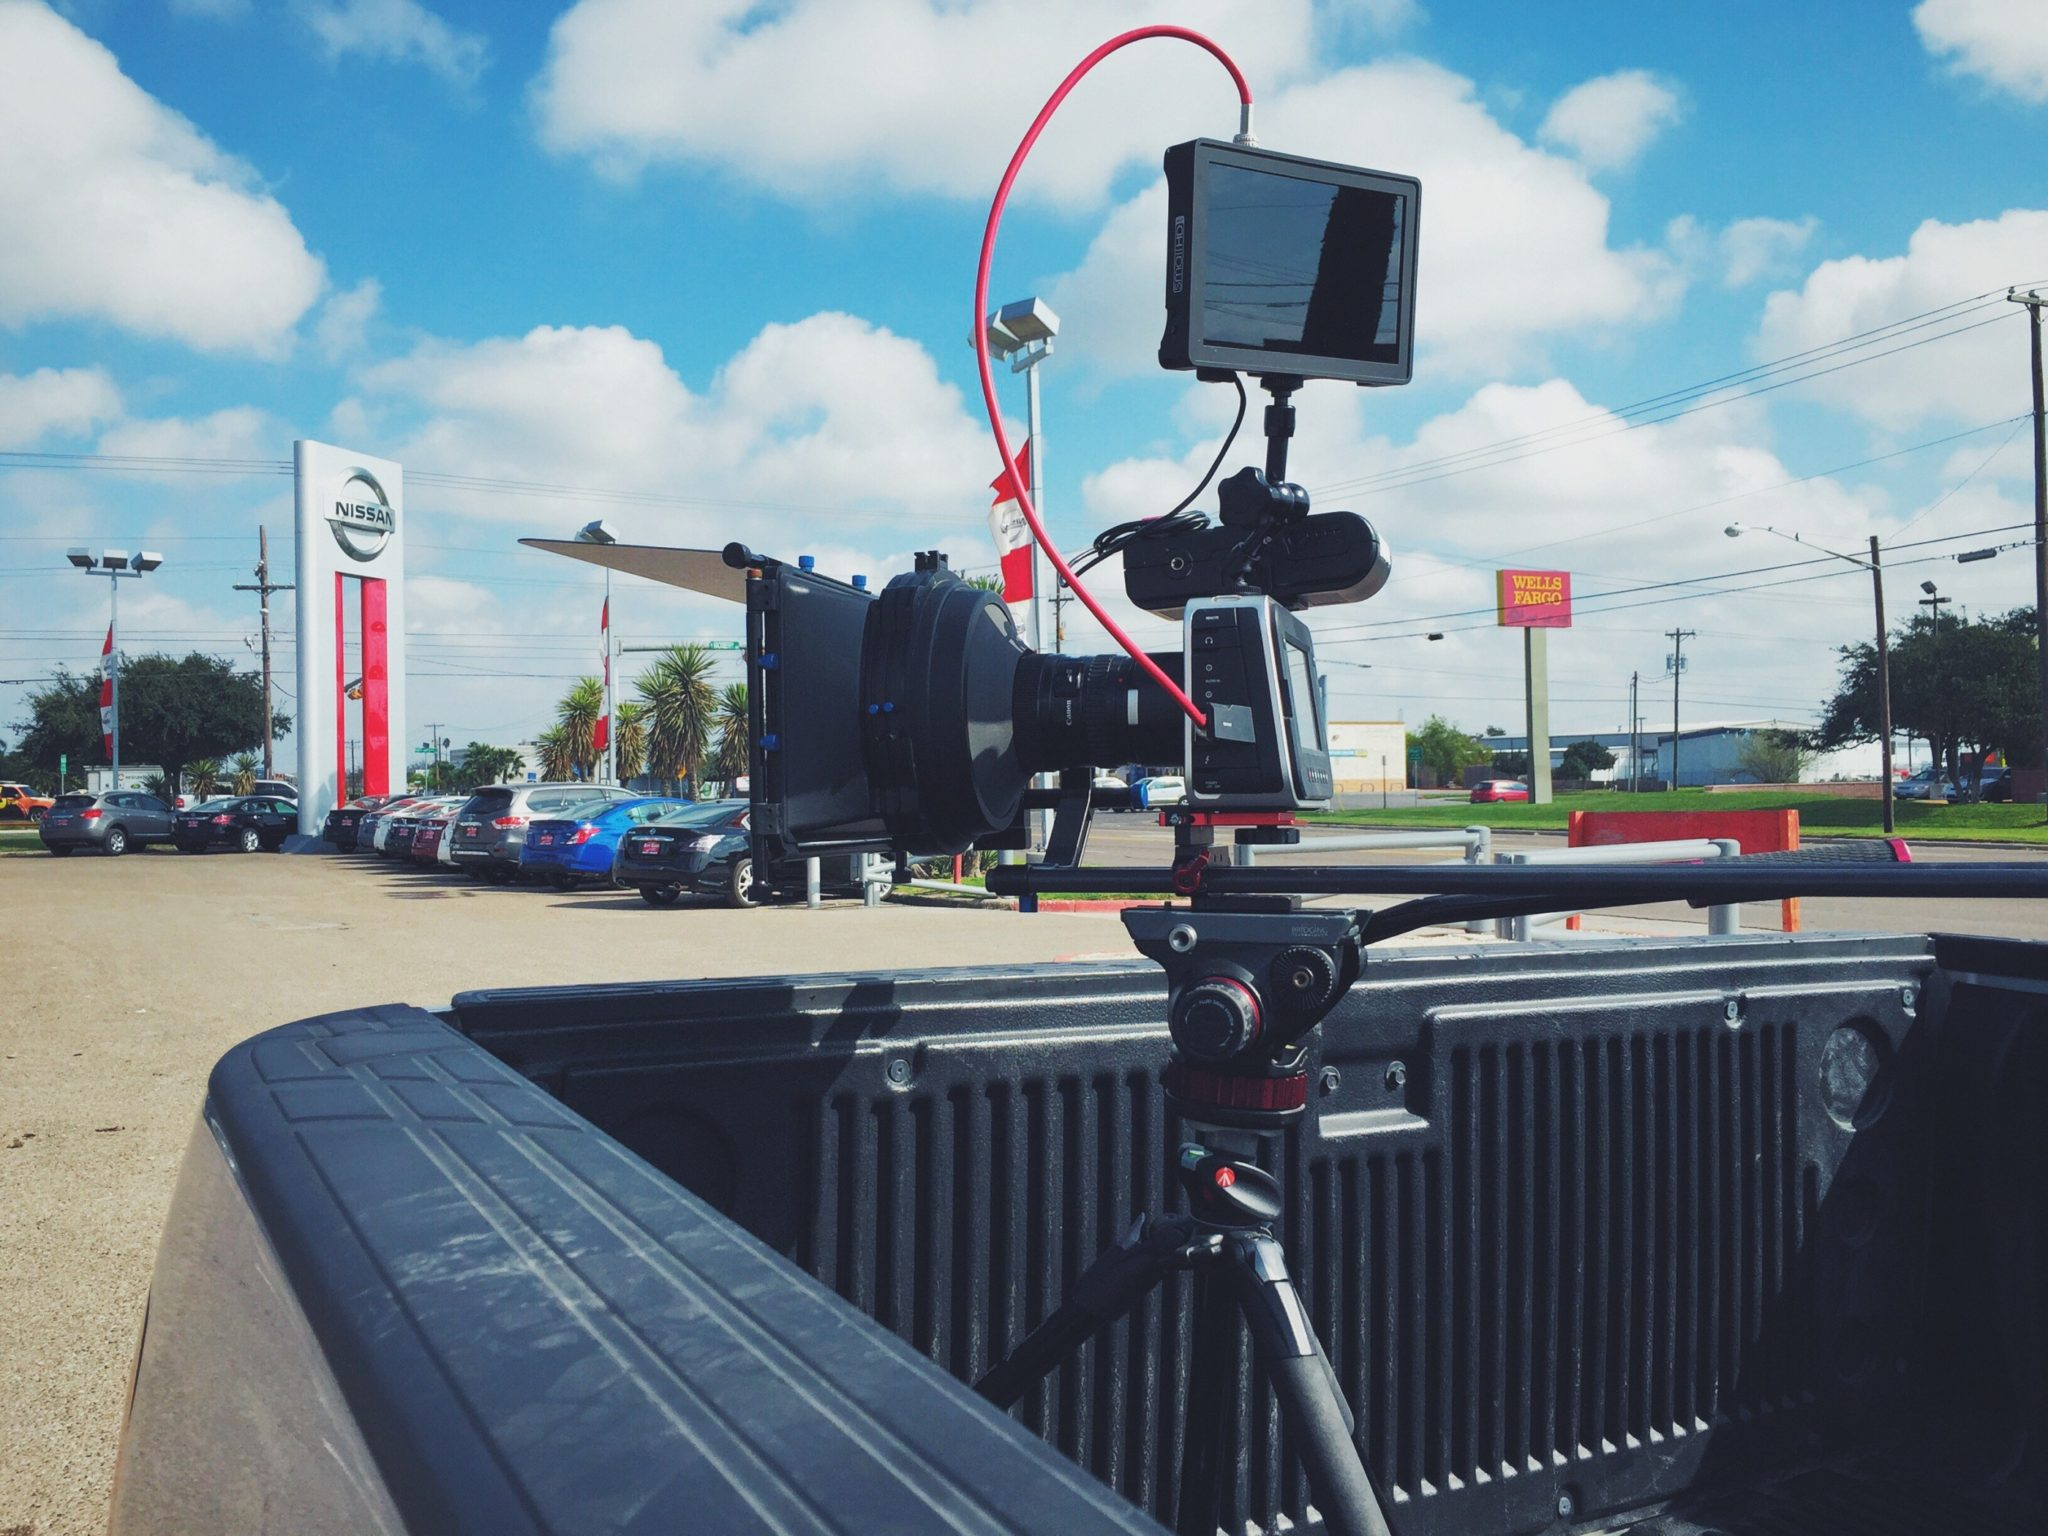 Blackmagic Cinema Camera in the bed of the picture car.